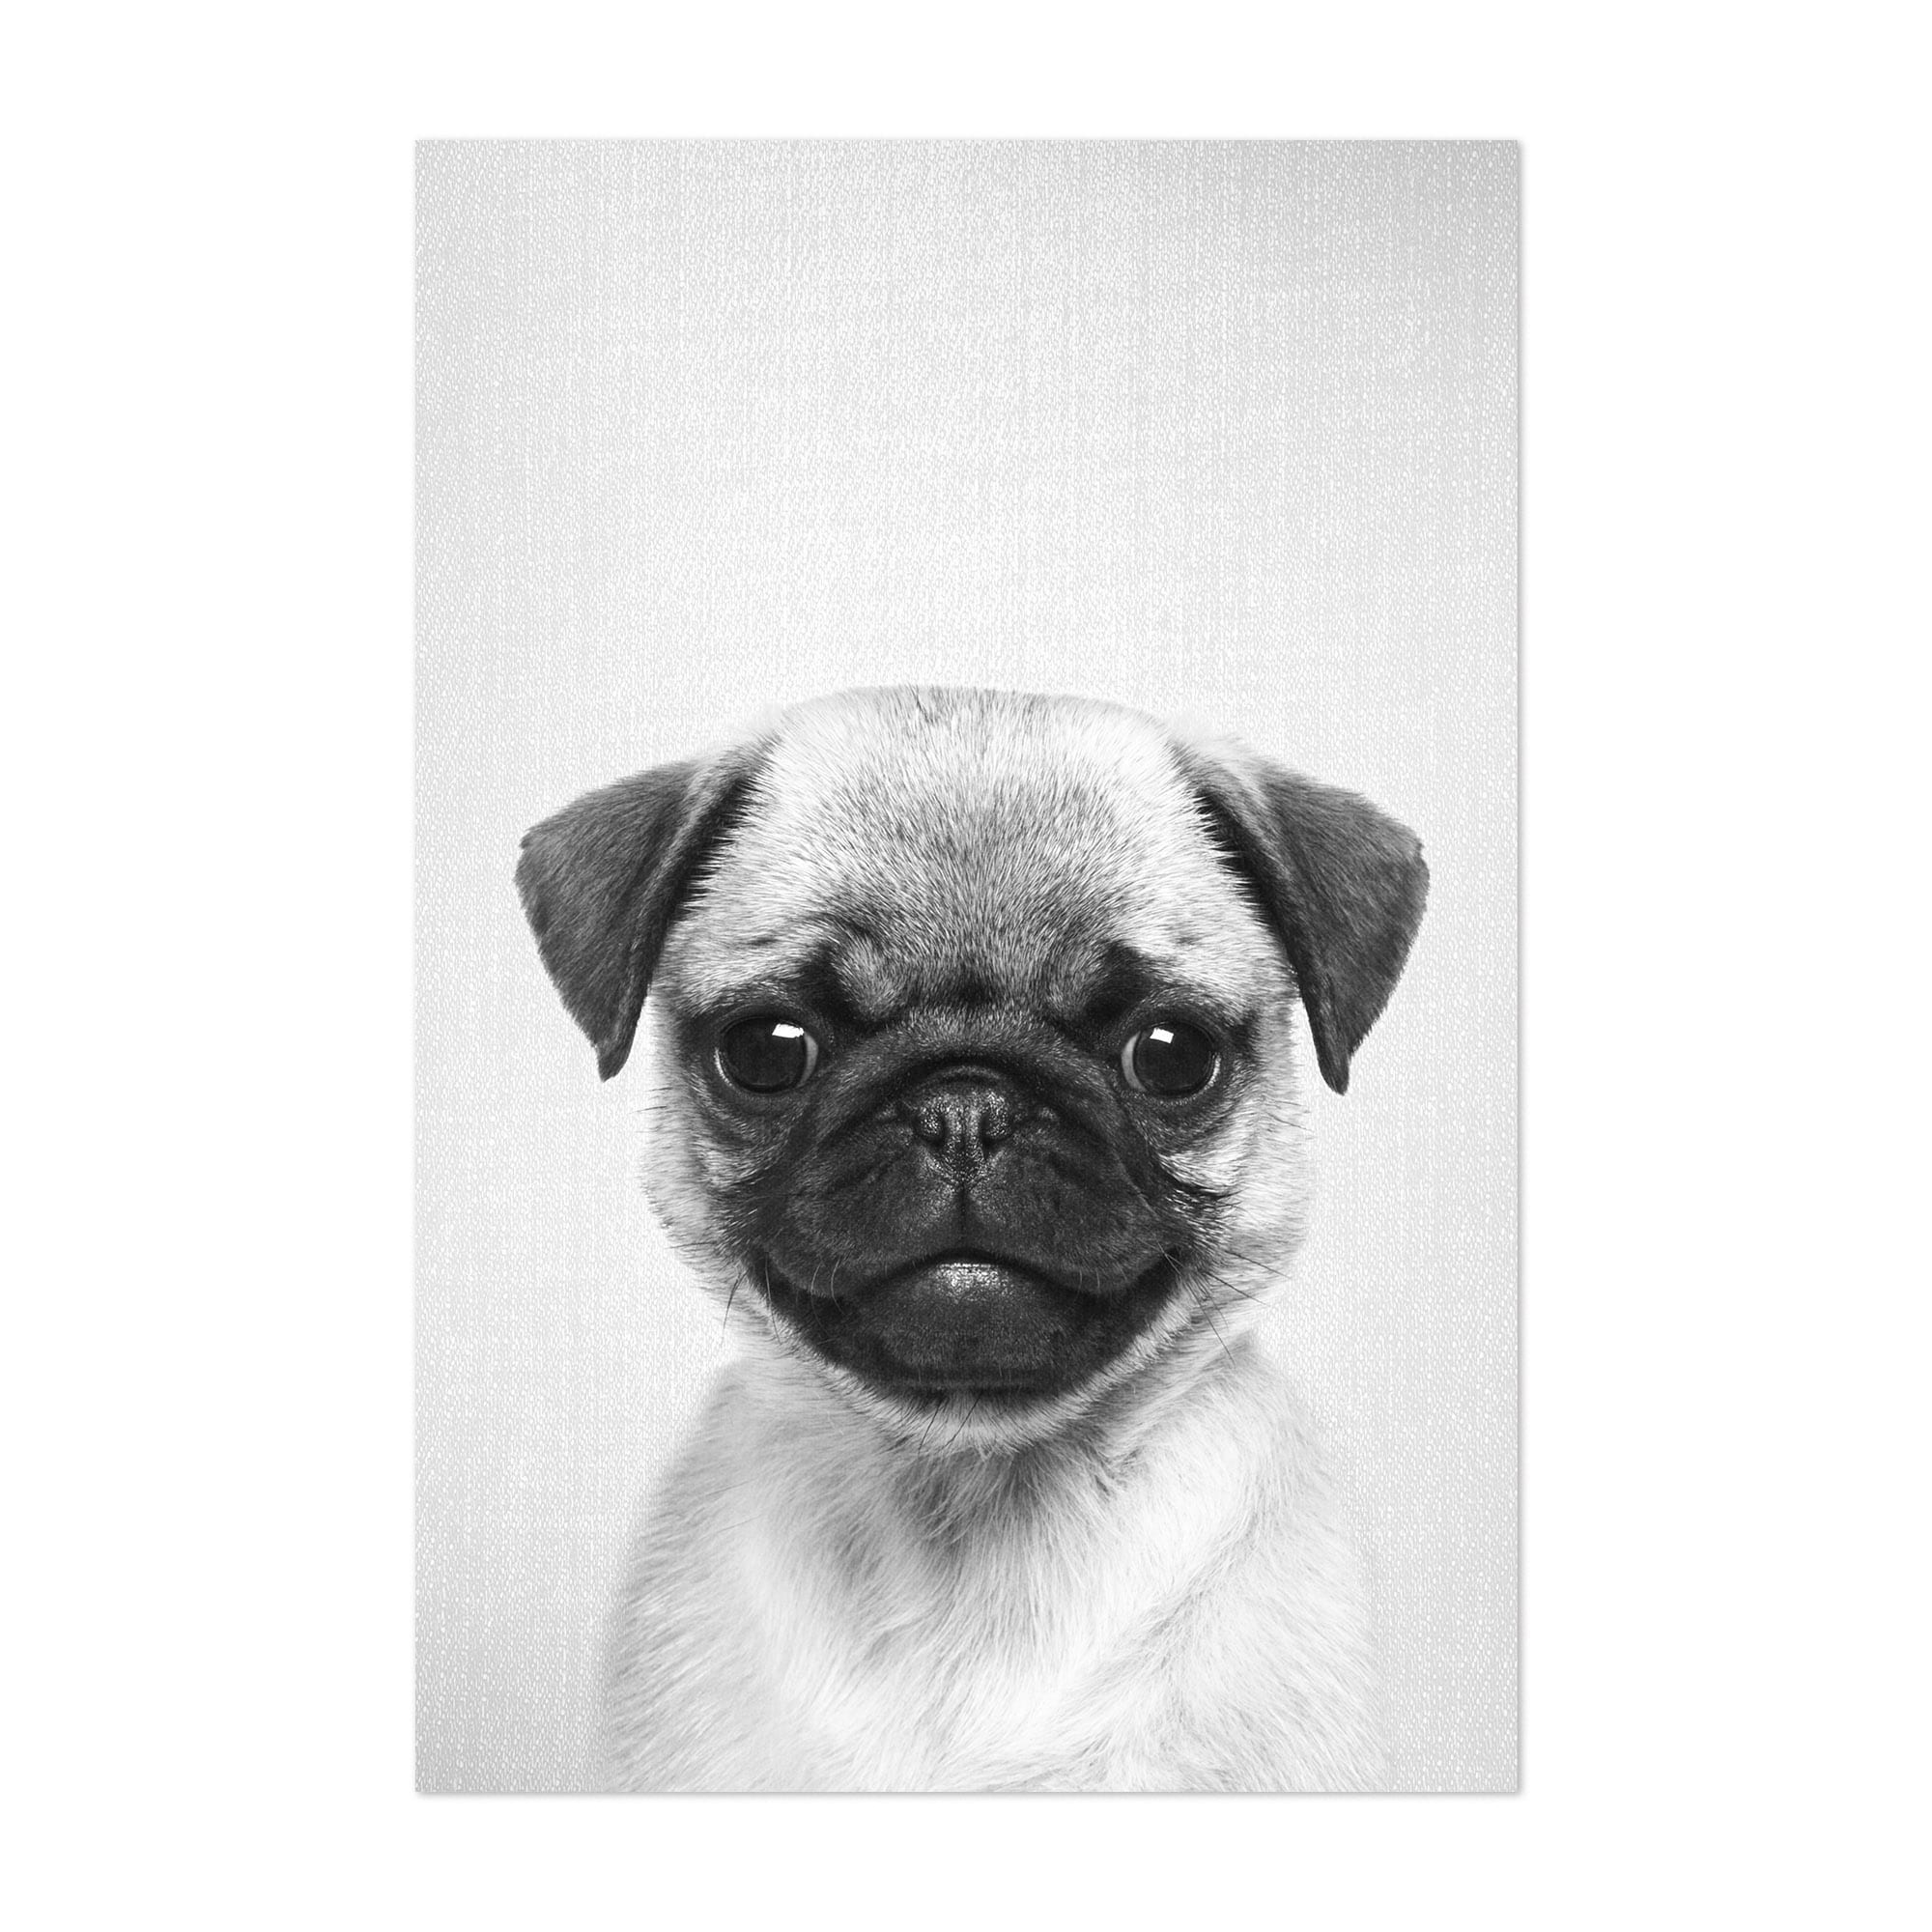 Picture Poster Dog Animal Art Pug Puppy Black White Large Framed Print